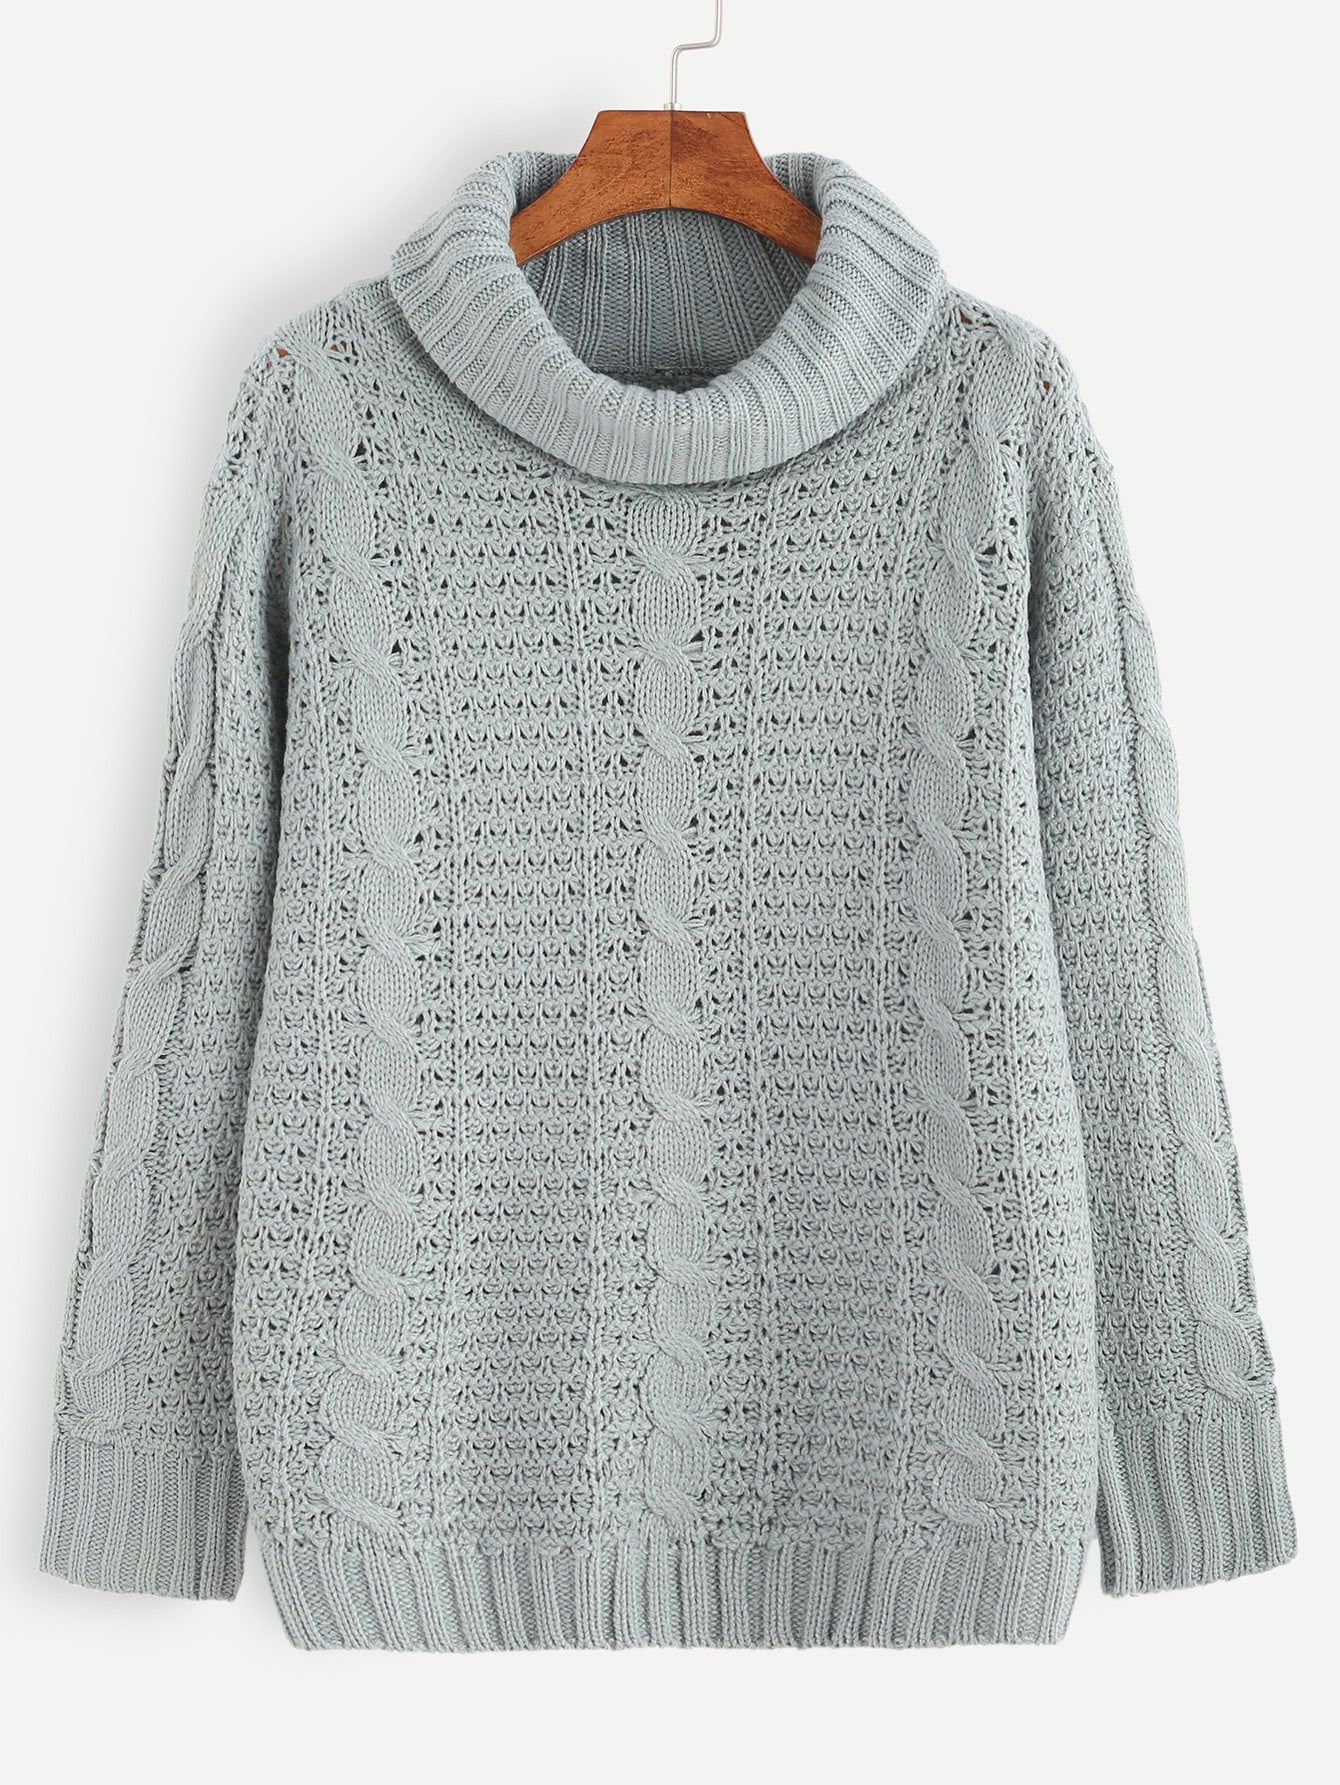 Grey Cable Knit Turtleneck SweaterGrey Cable Knit Turtleneck Sweater<br><br>color: Grey<br>size: one-size